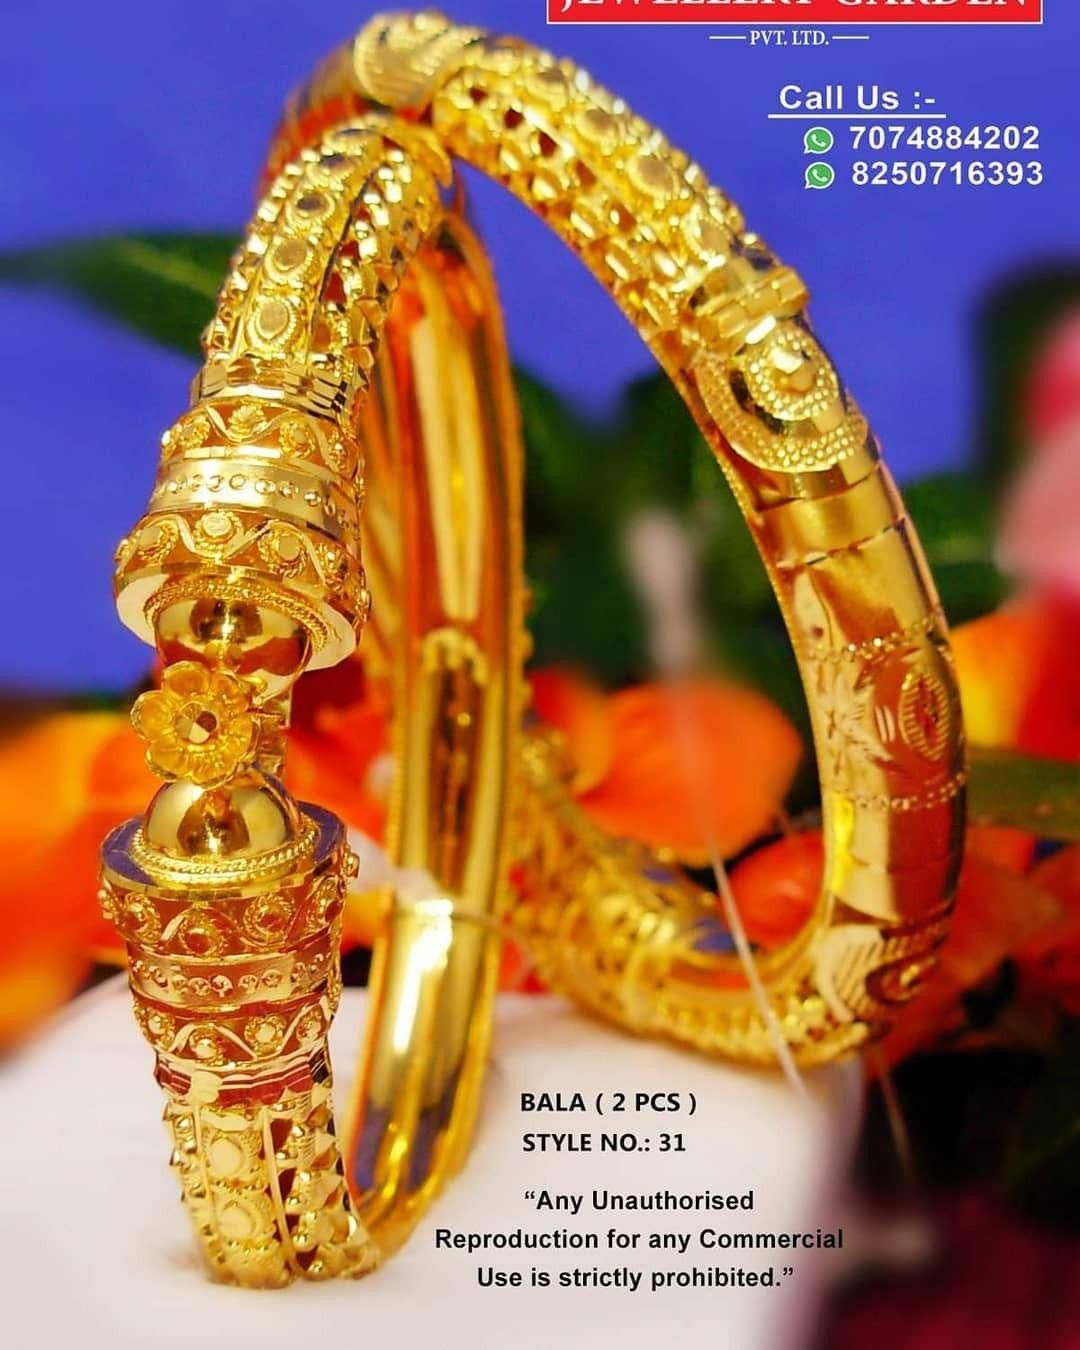 Pin By Tanipa On Gold Bangles Pure Gold Jewellery Silver Earrings Etsy Classic Jewelry